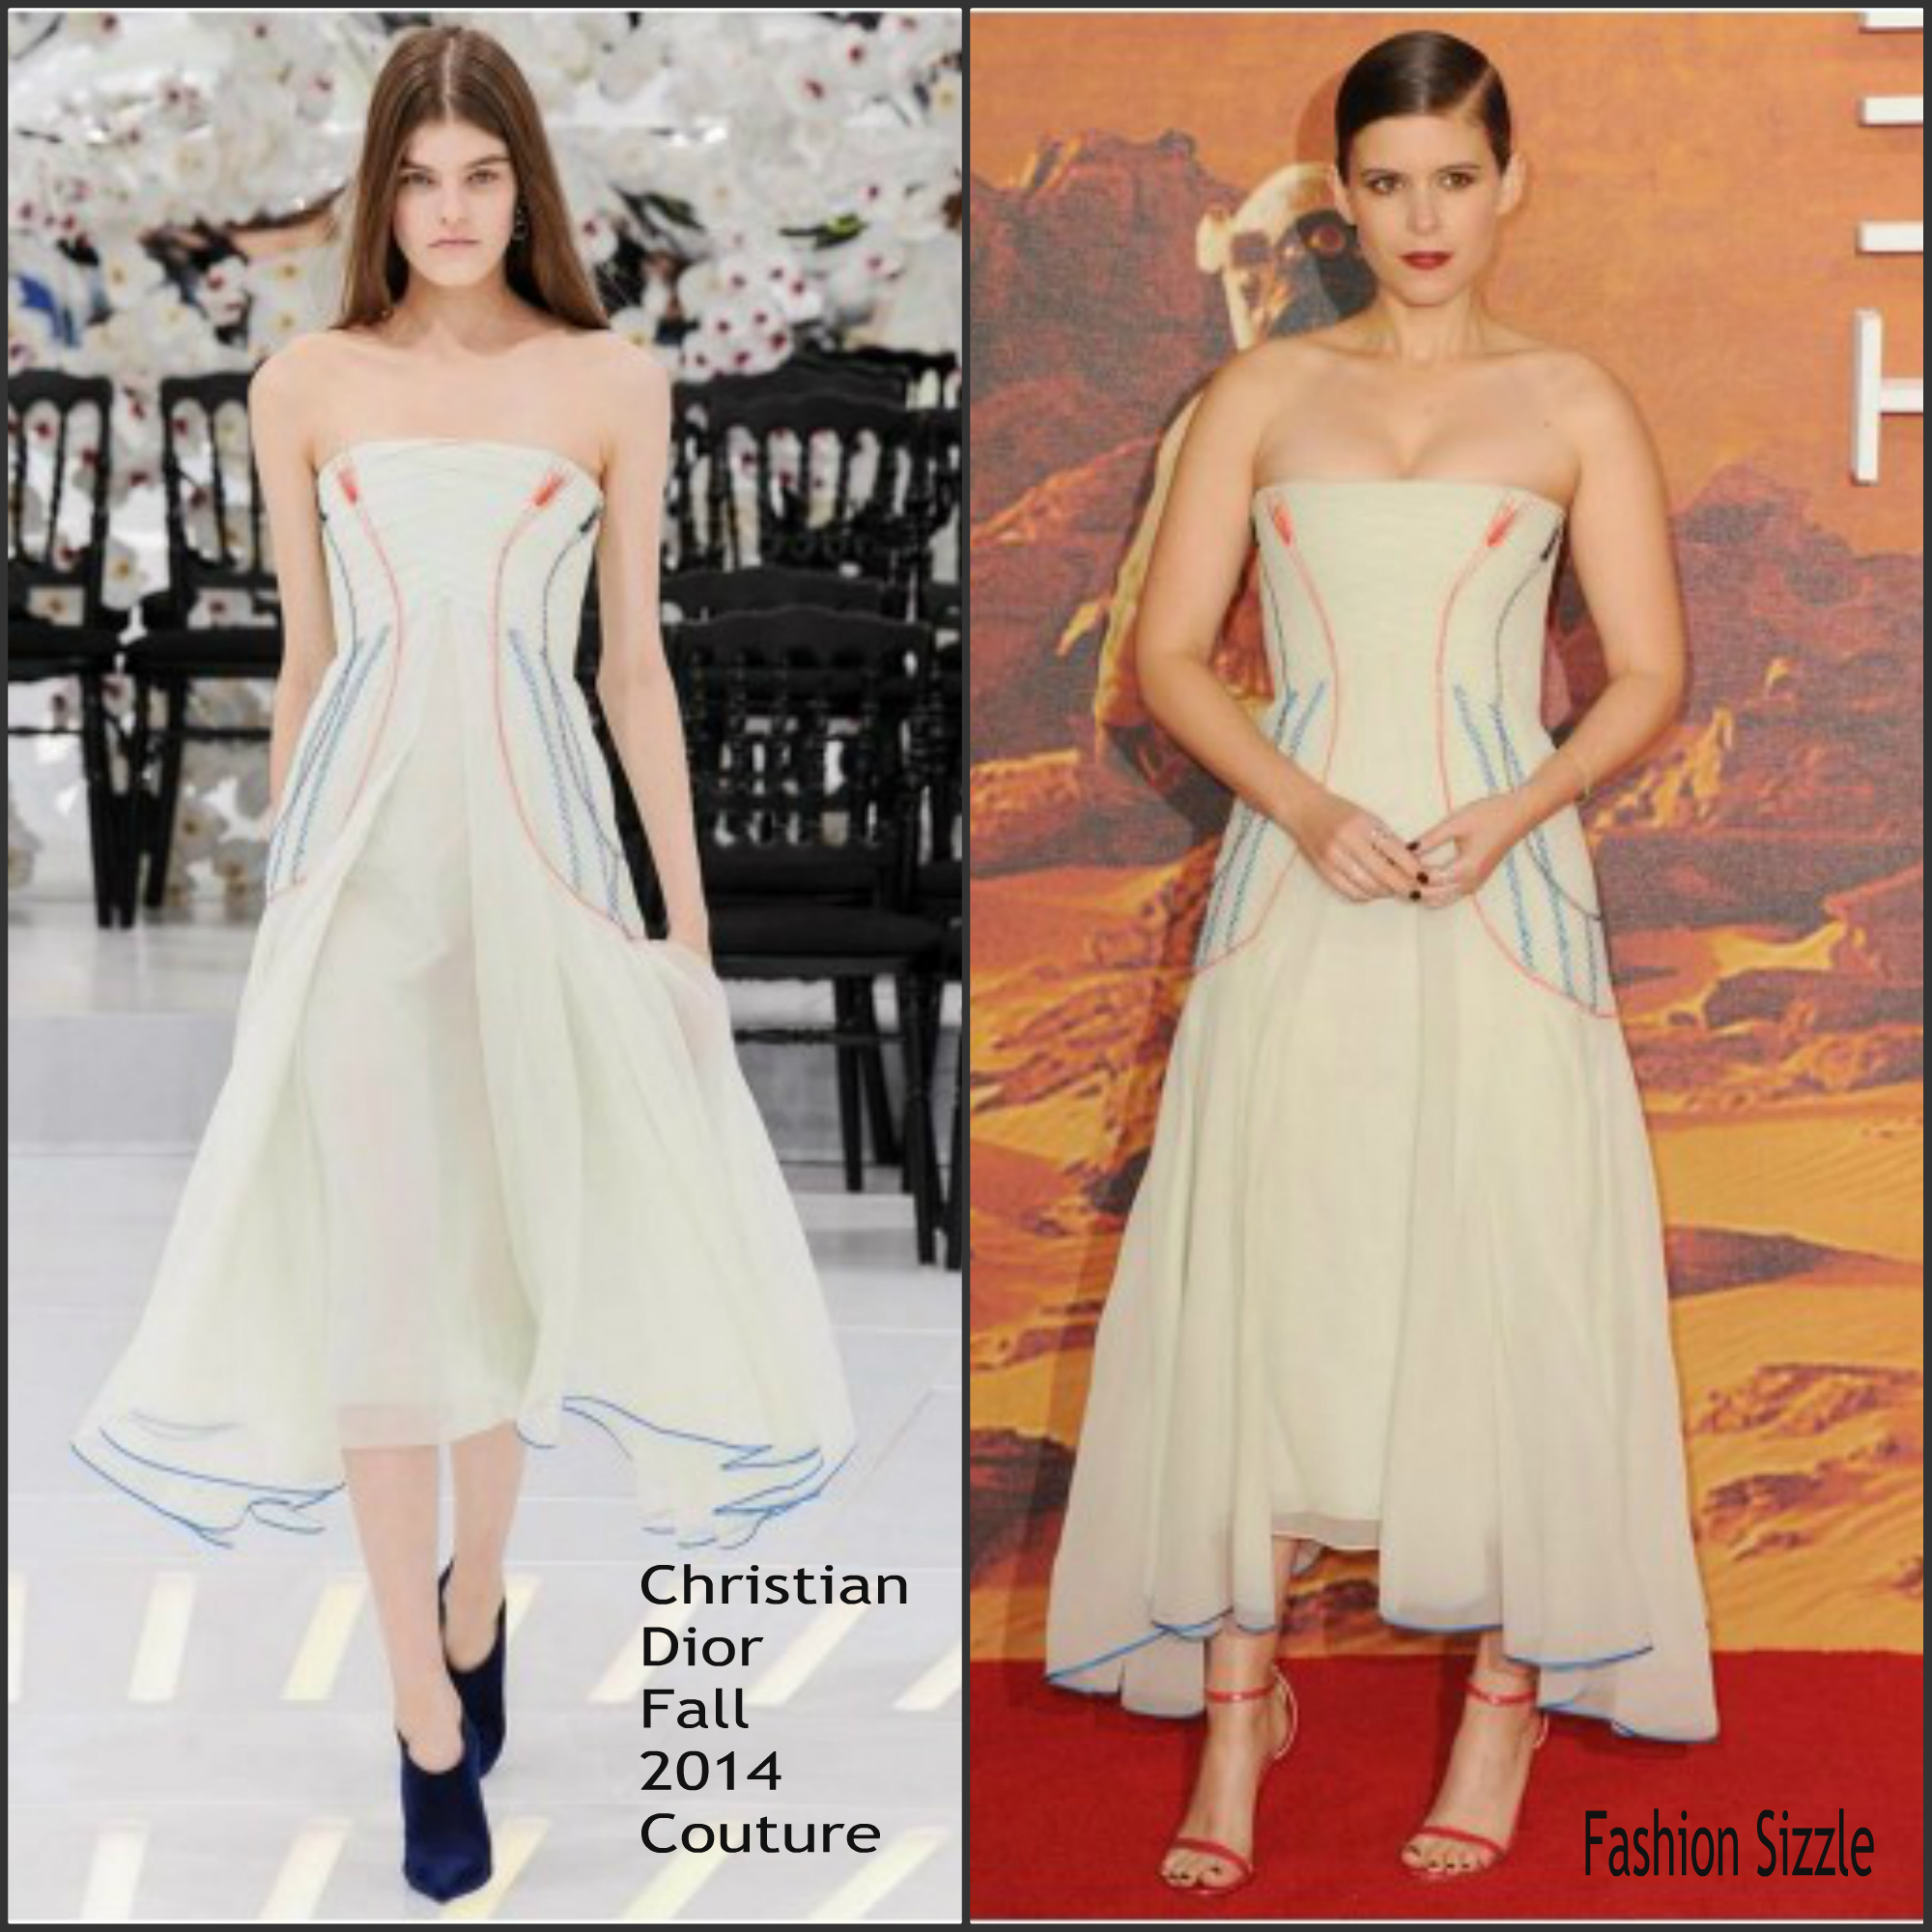 kate-mara-in-christian-dior-couture-the-martian-london-premiere